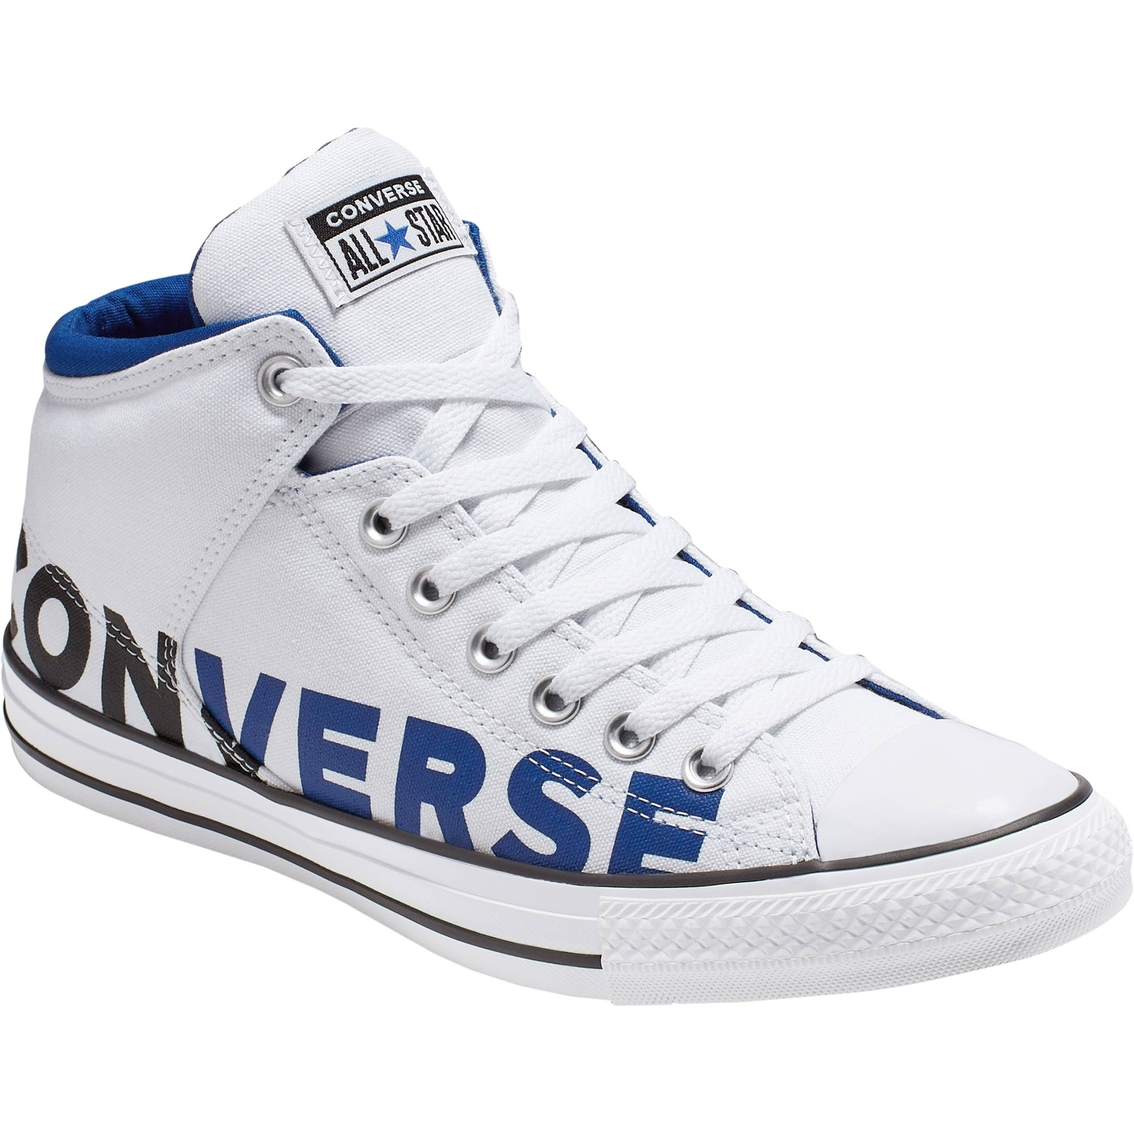 Ctas High Street   Sneakers   Shoes